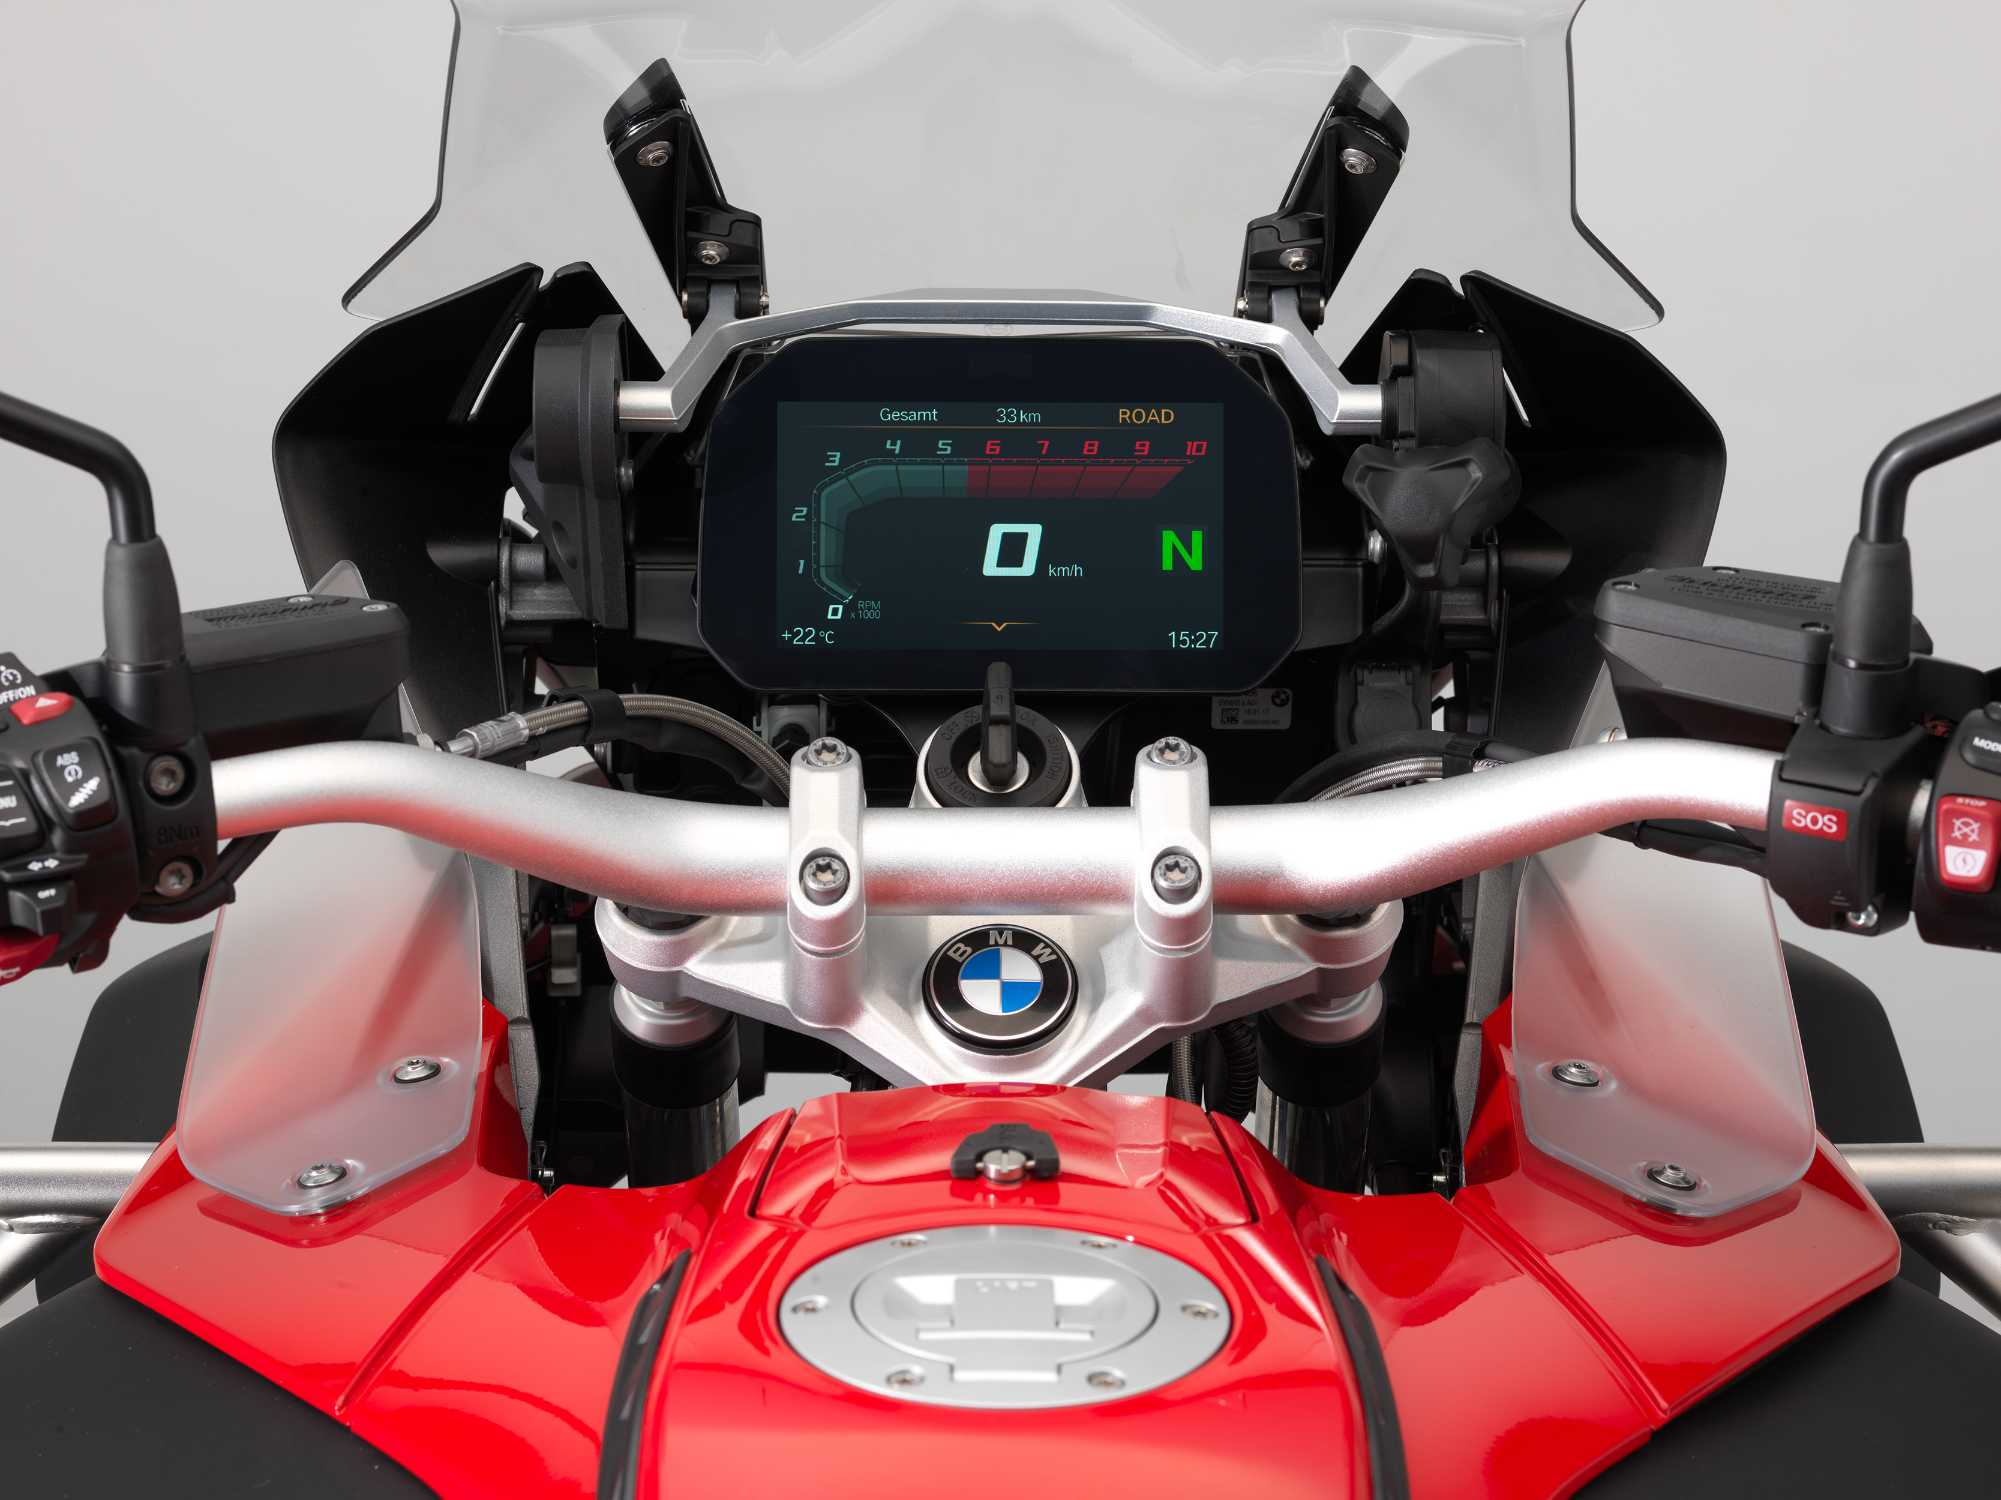 bmw motorrad bringt sonderausstattung connectivity multifunktionale instrumentenkombination mit. Black Bedroom Furniture Sets. Home Design Ideas